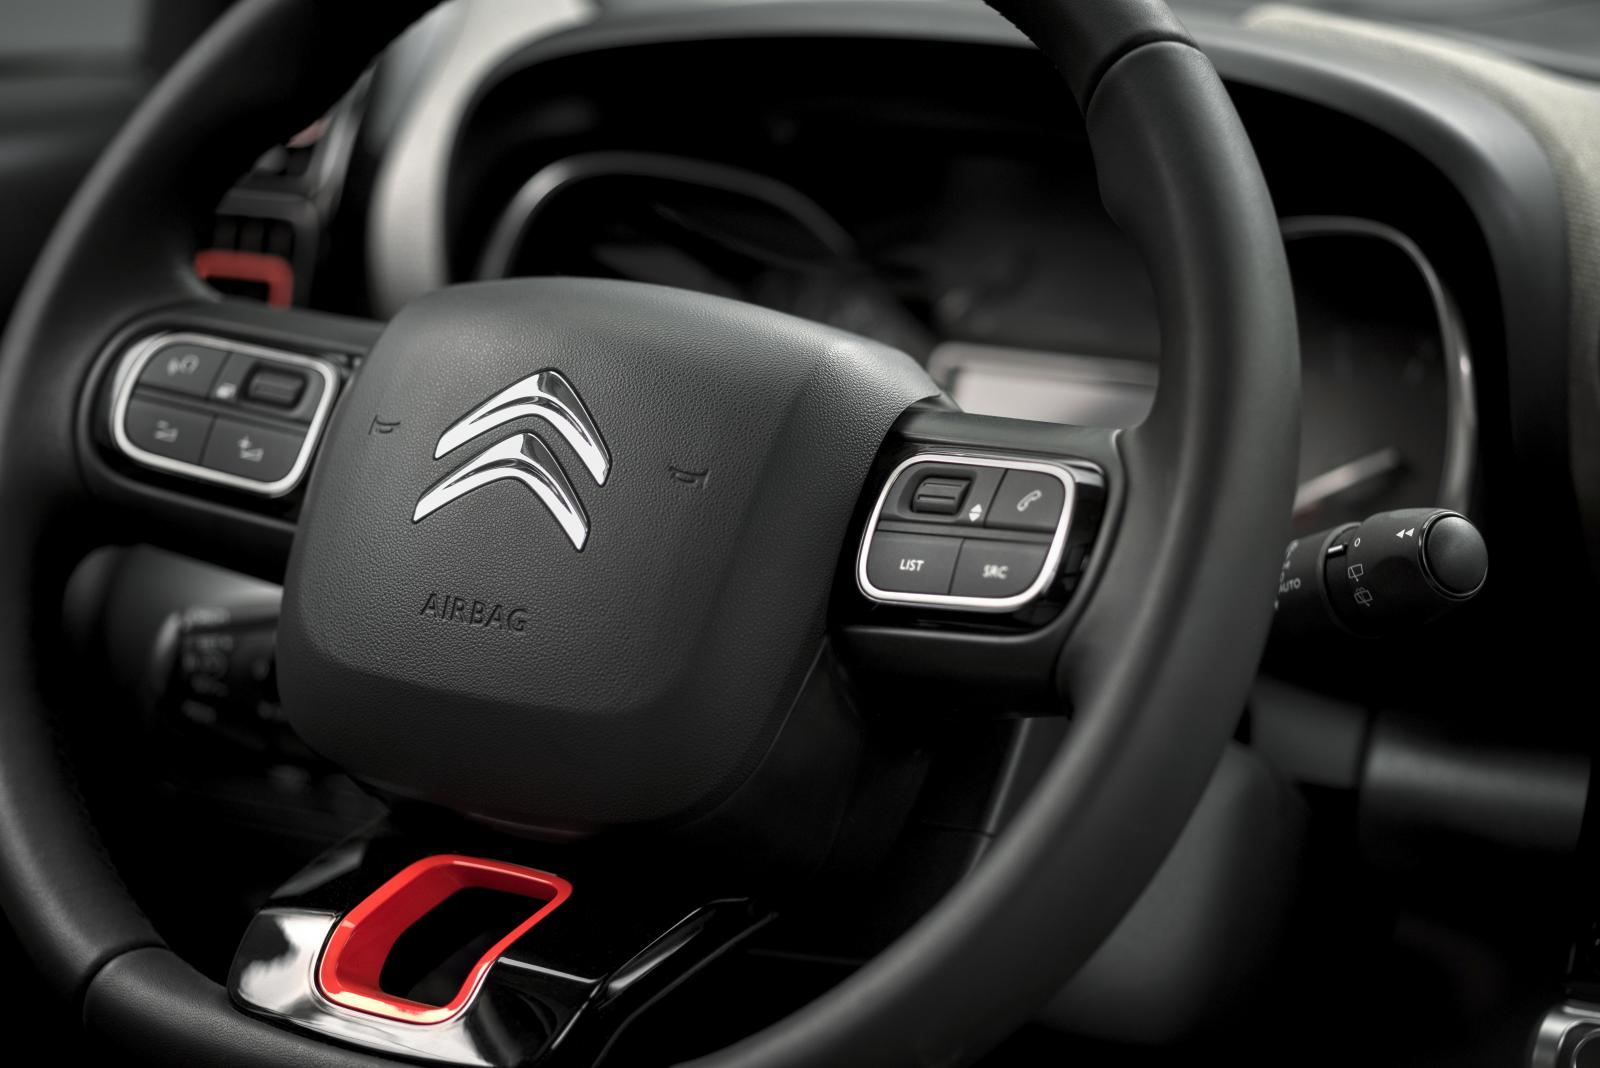 C3 Aircross Compact SUV - Steering wheel